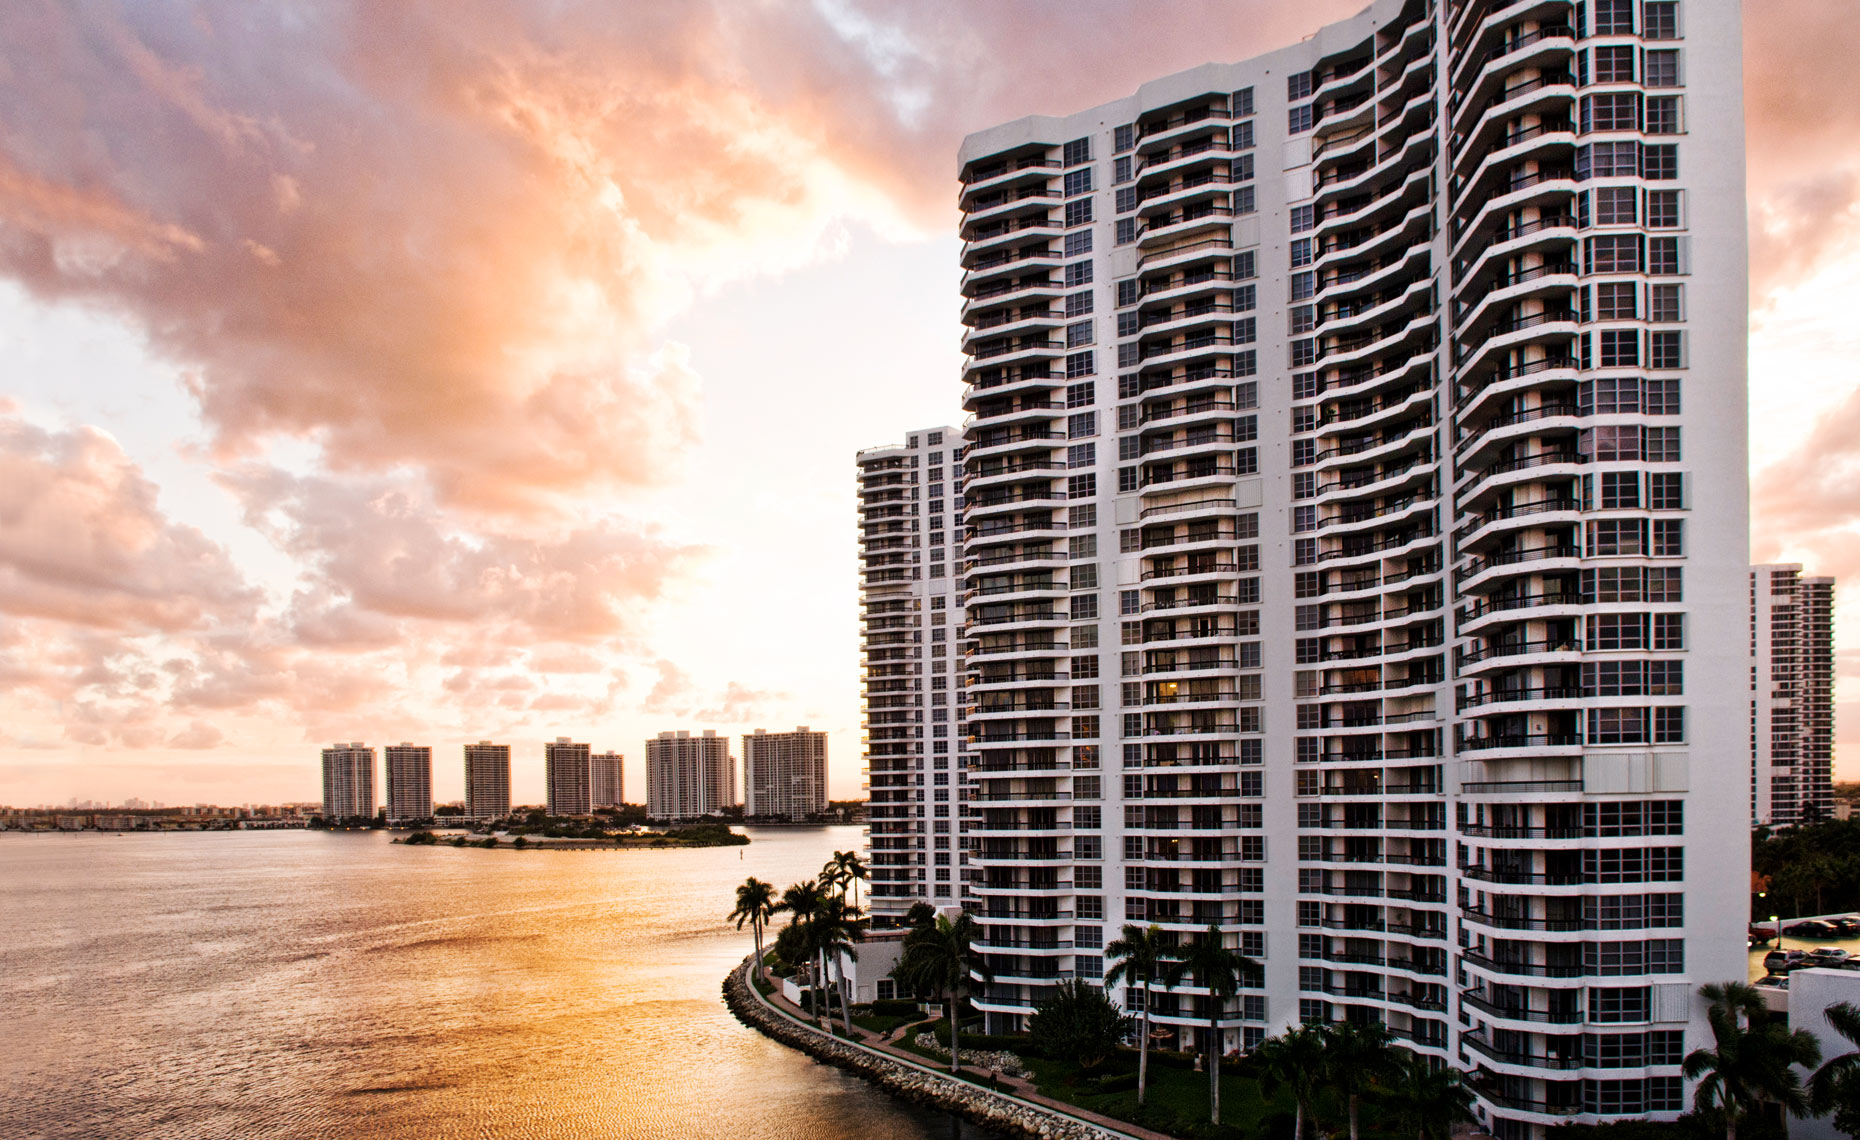 Scott Redinger-Libolt / redphoto, architectural photographers in Miami, Florida